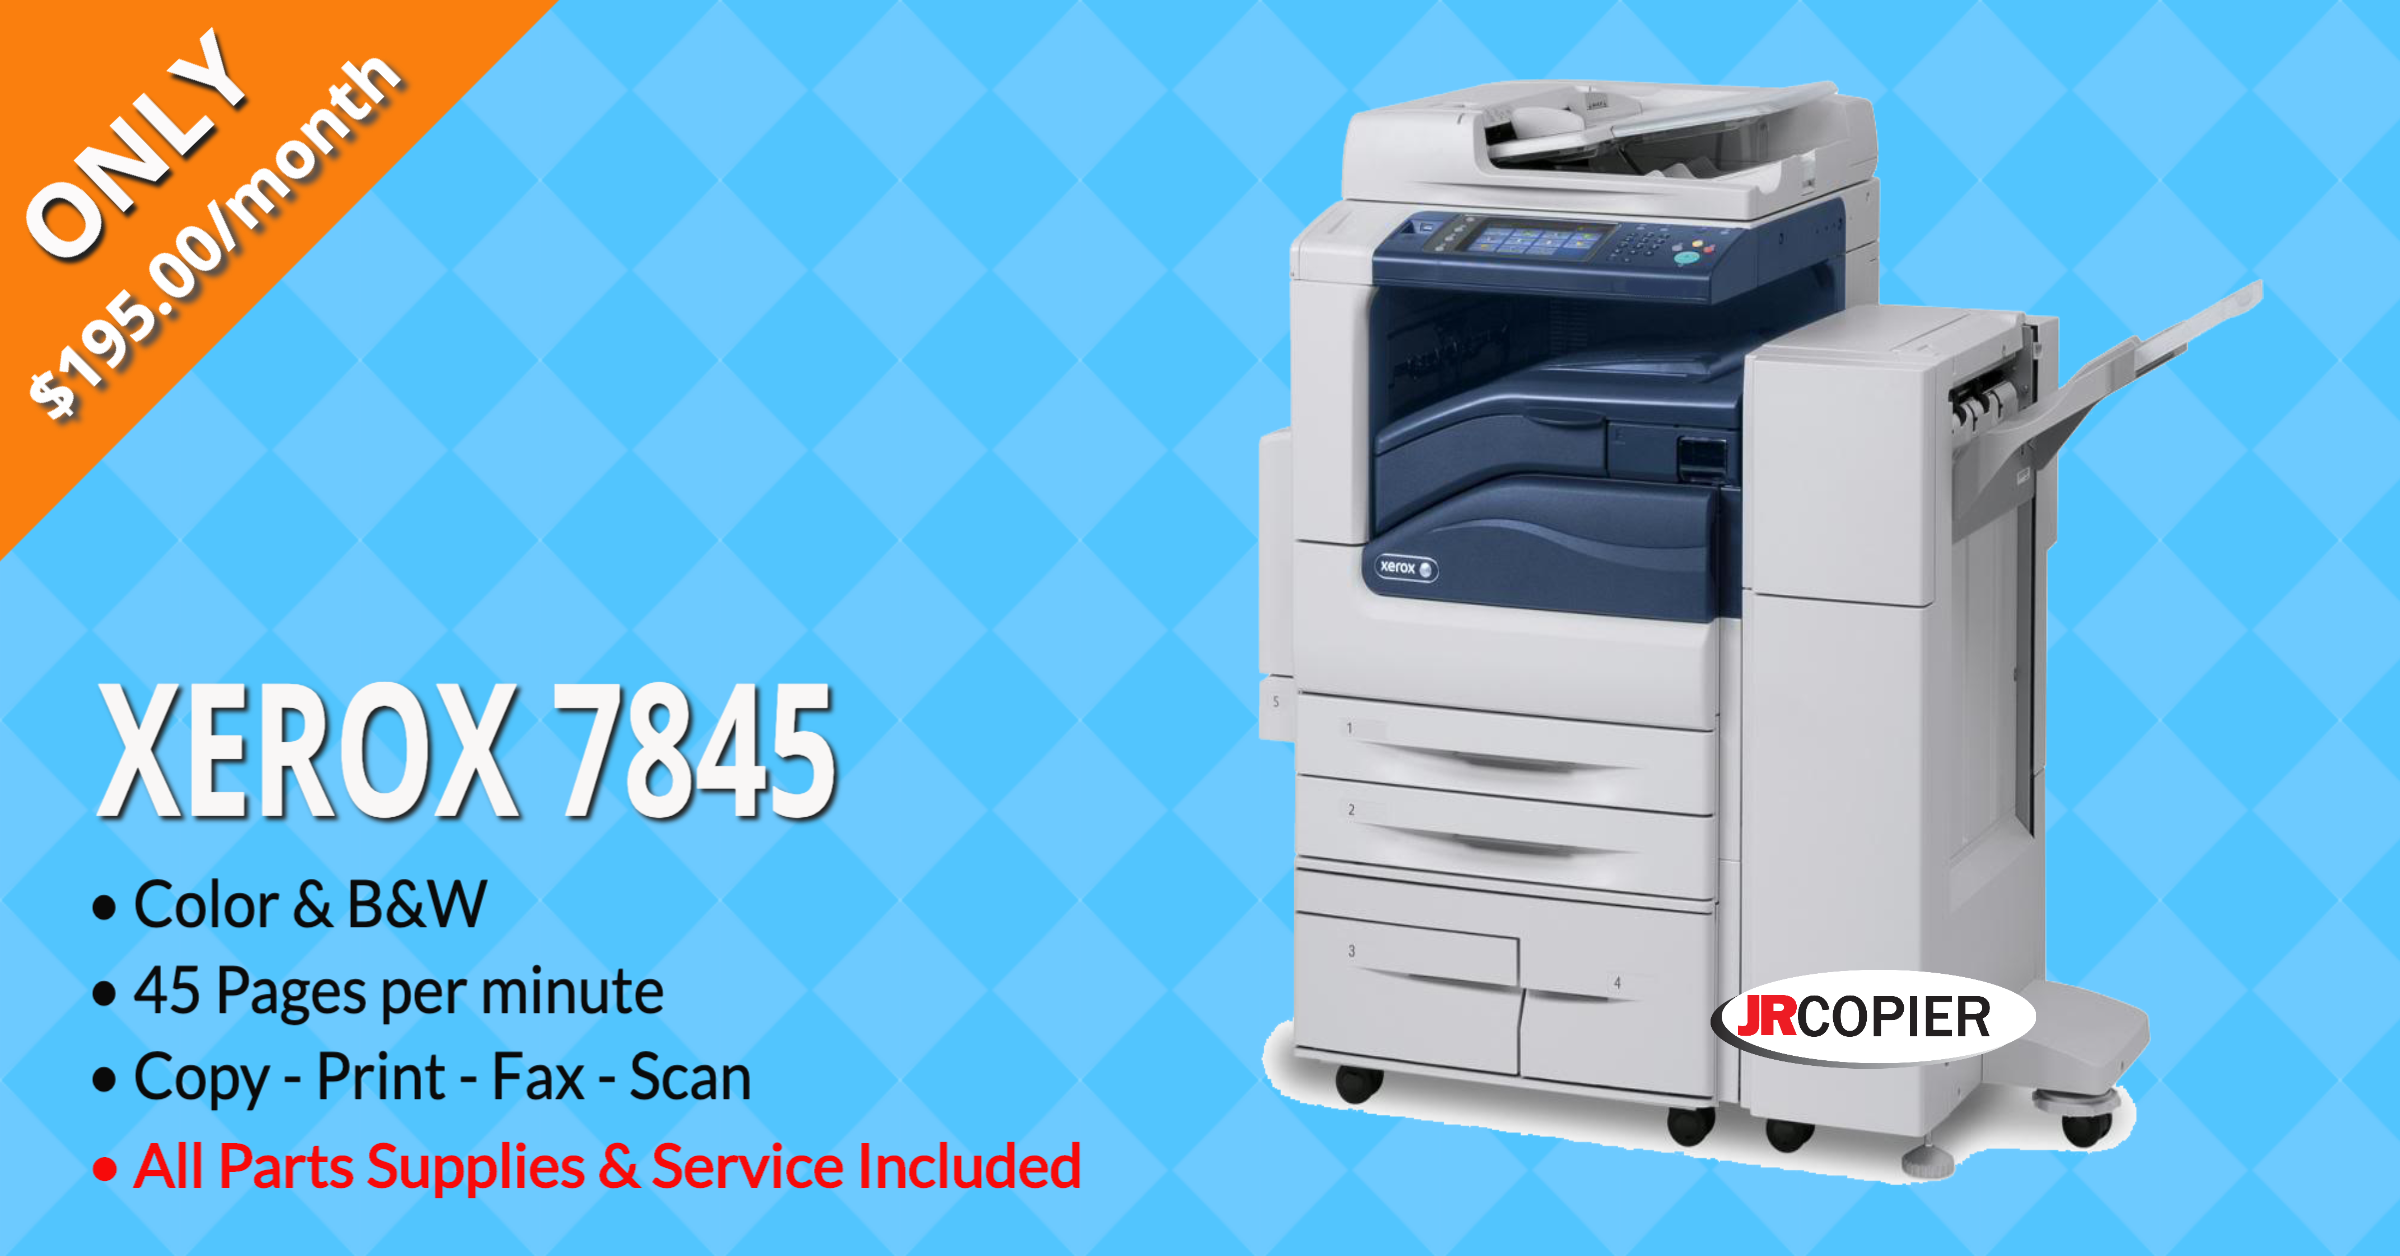 Copy Machine Companies 27587, 27588, 27596, 27614